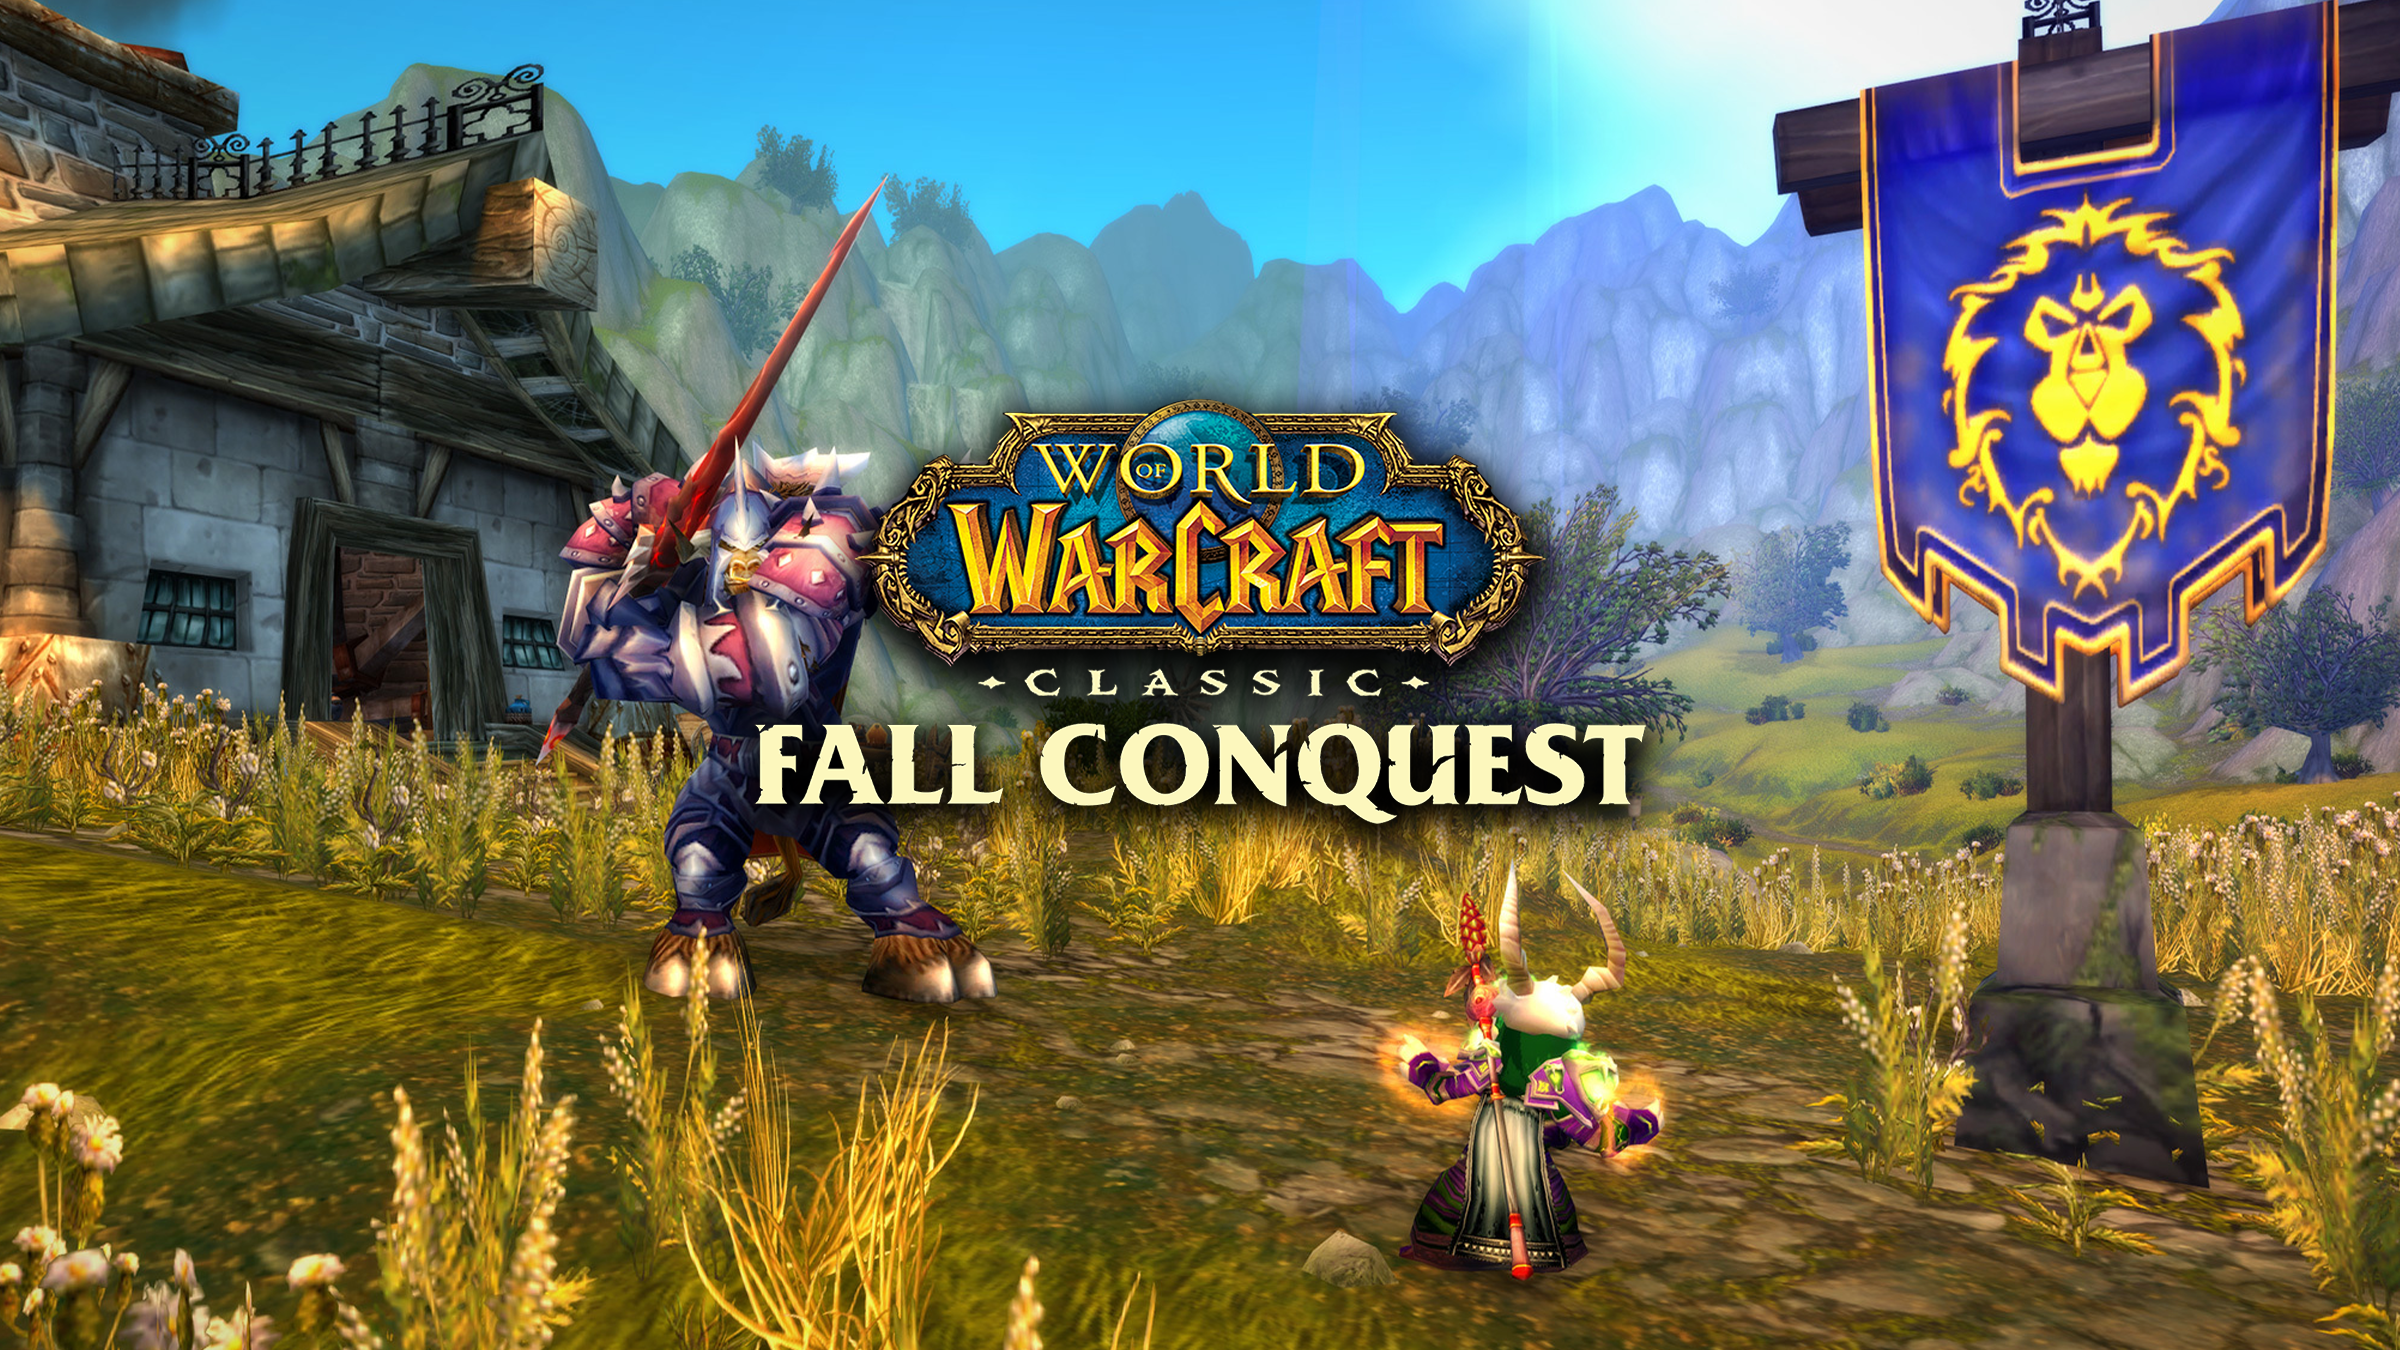 Introducing the World of Warcraft Classic Fall Conquest